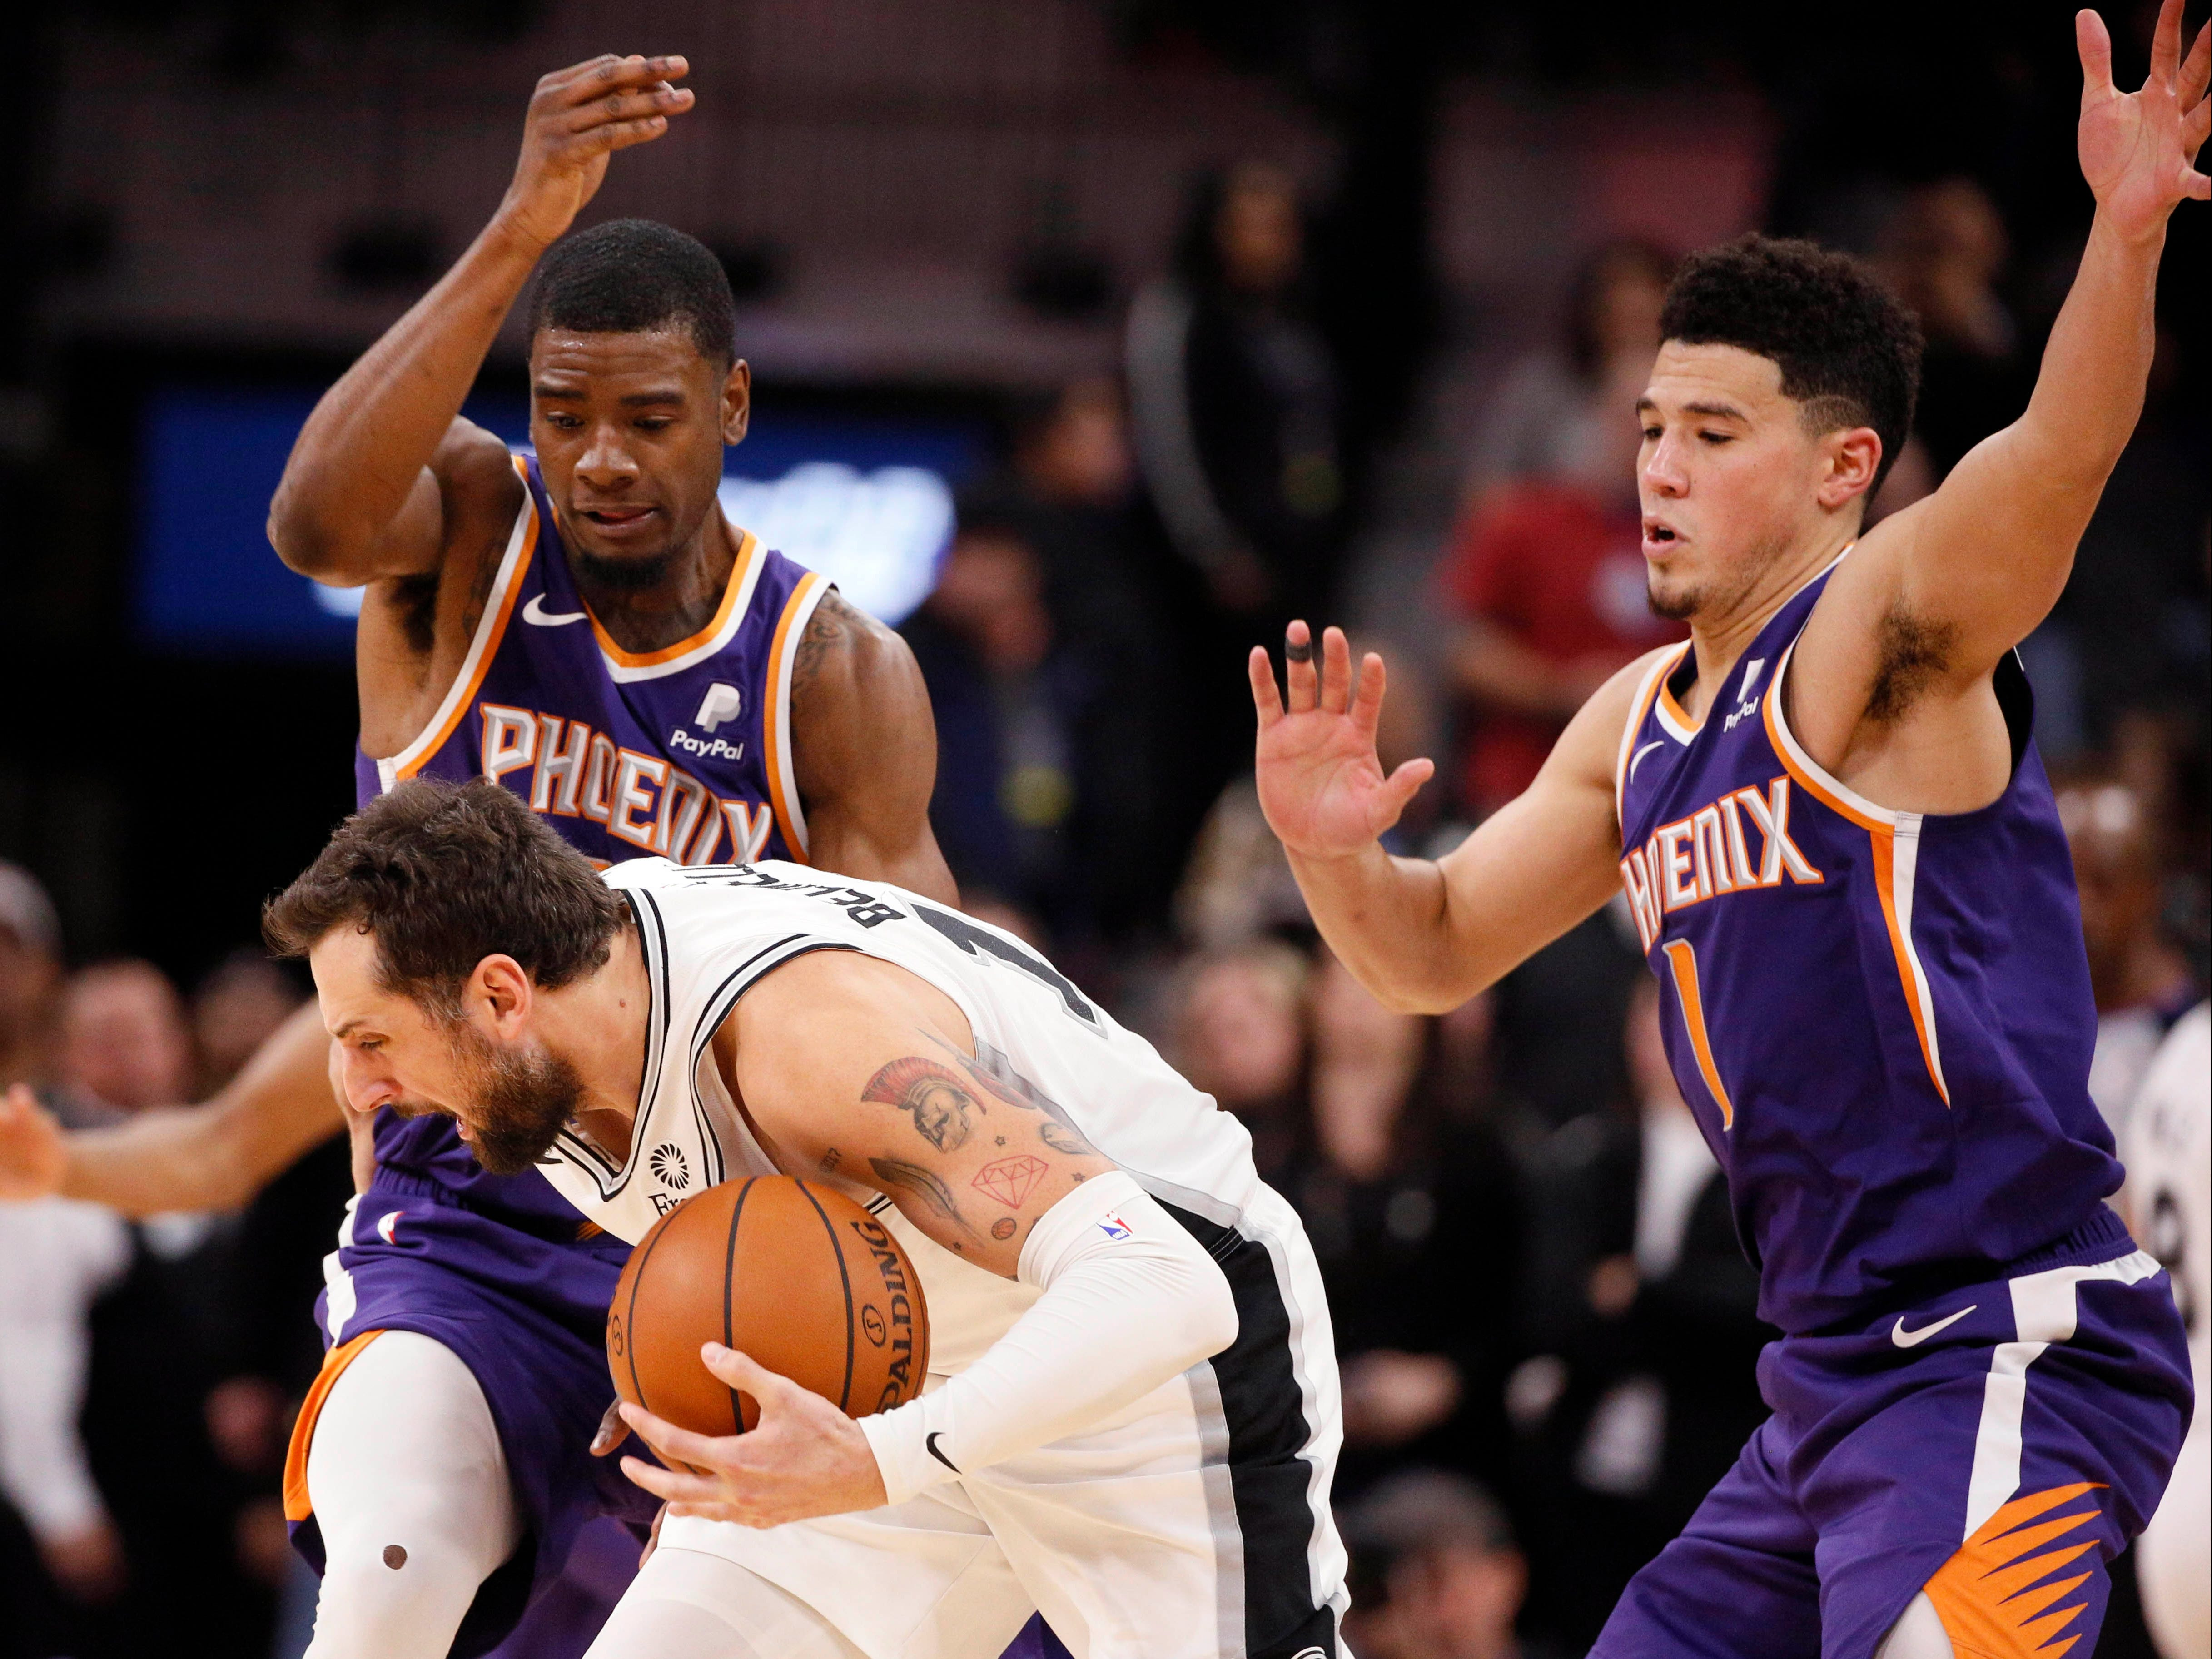 Jan 29, 2019: San Antonio Spurs shooting guard Marco Belinelli (middle) is pressured by Phoenix Suns small forward Josh Jackson (left) and Devin Booker (1) during the second half at AT&T Center.